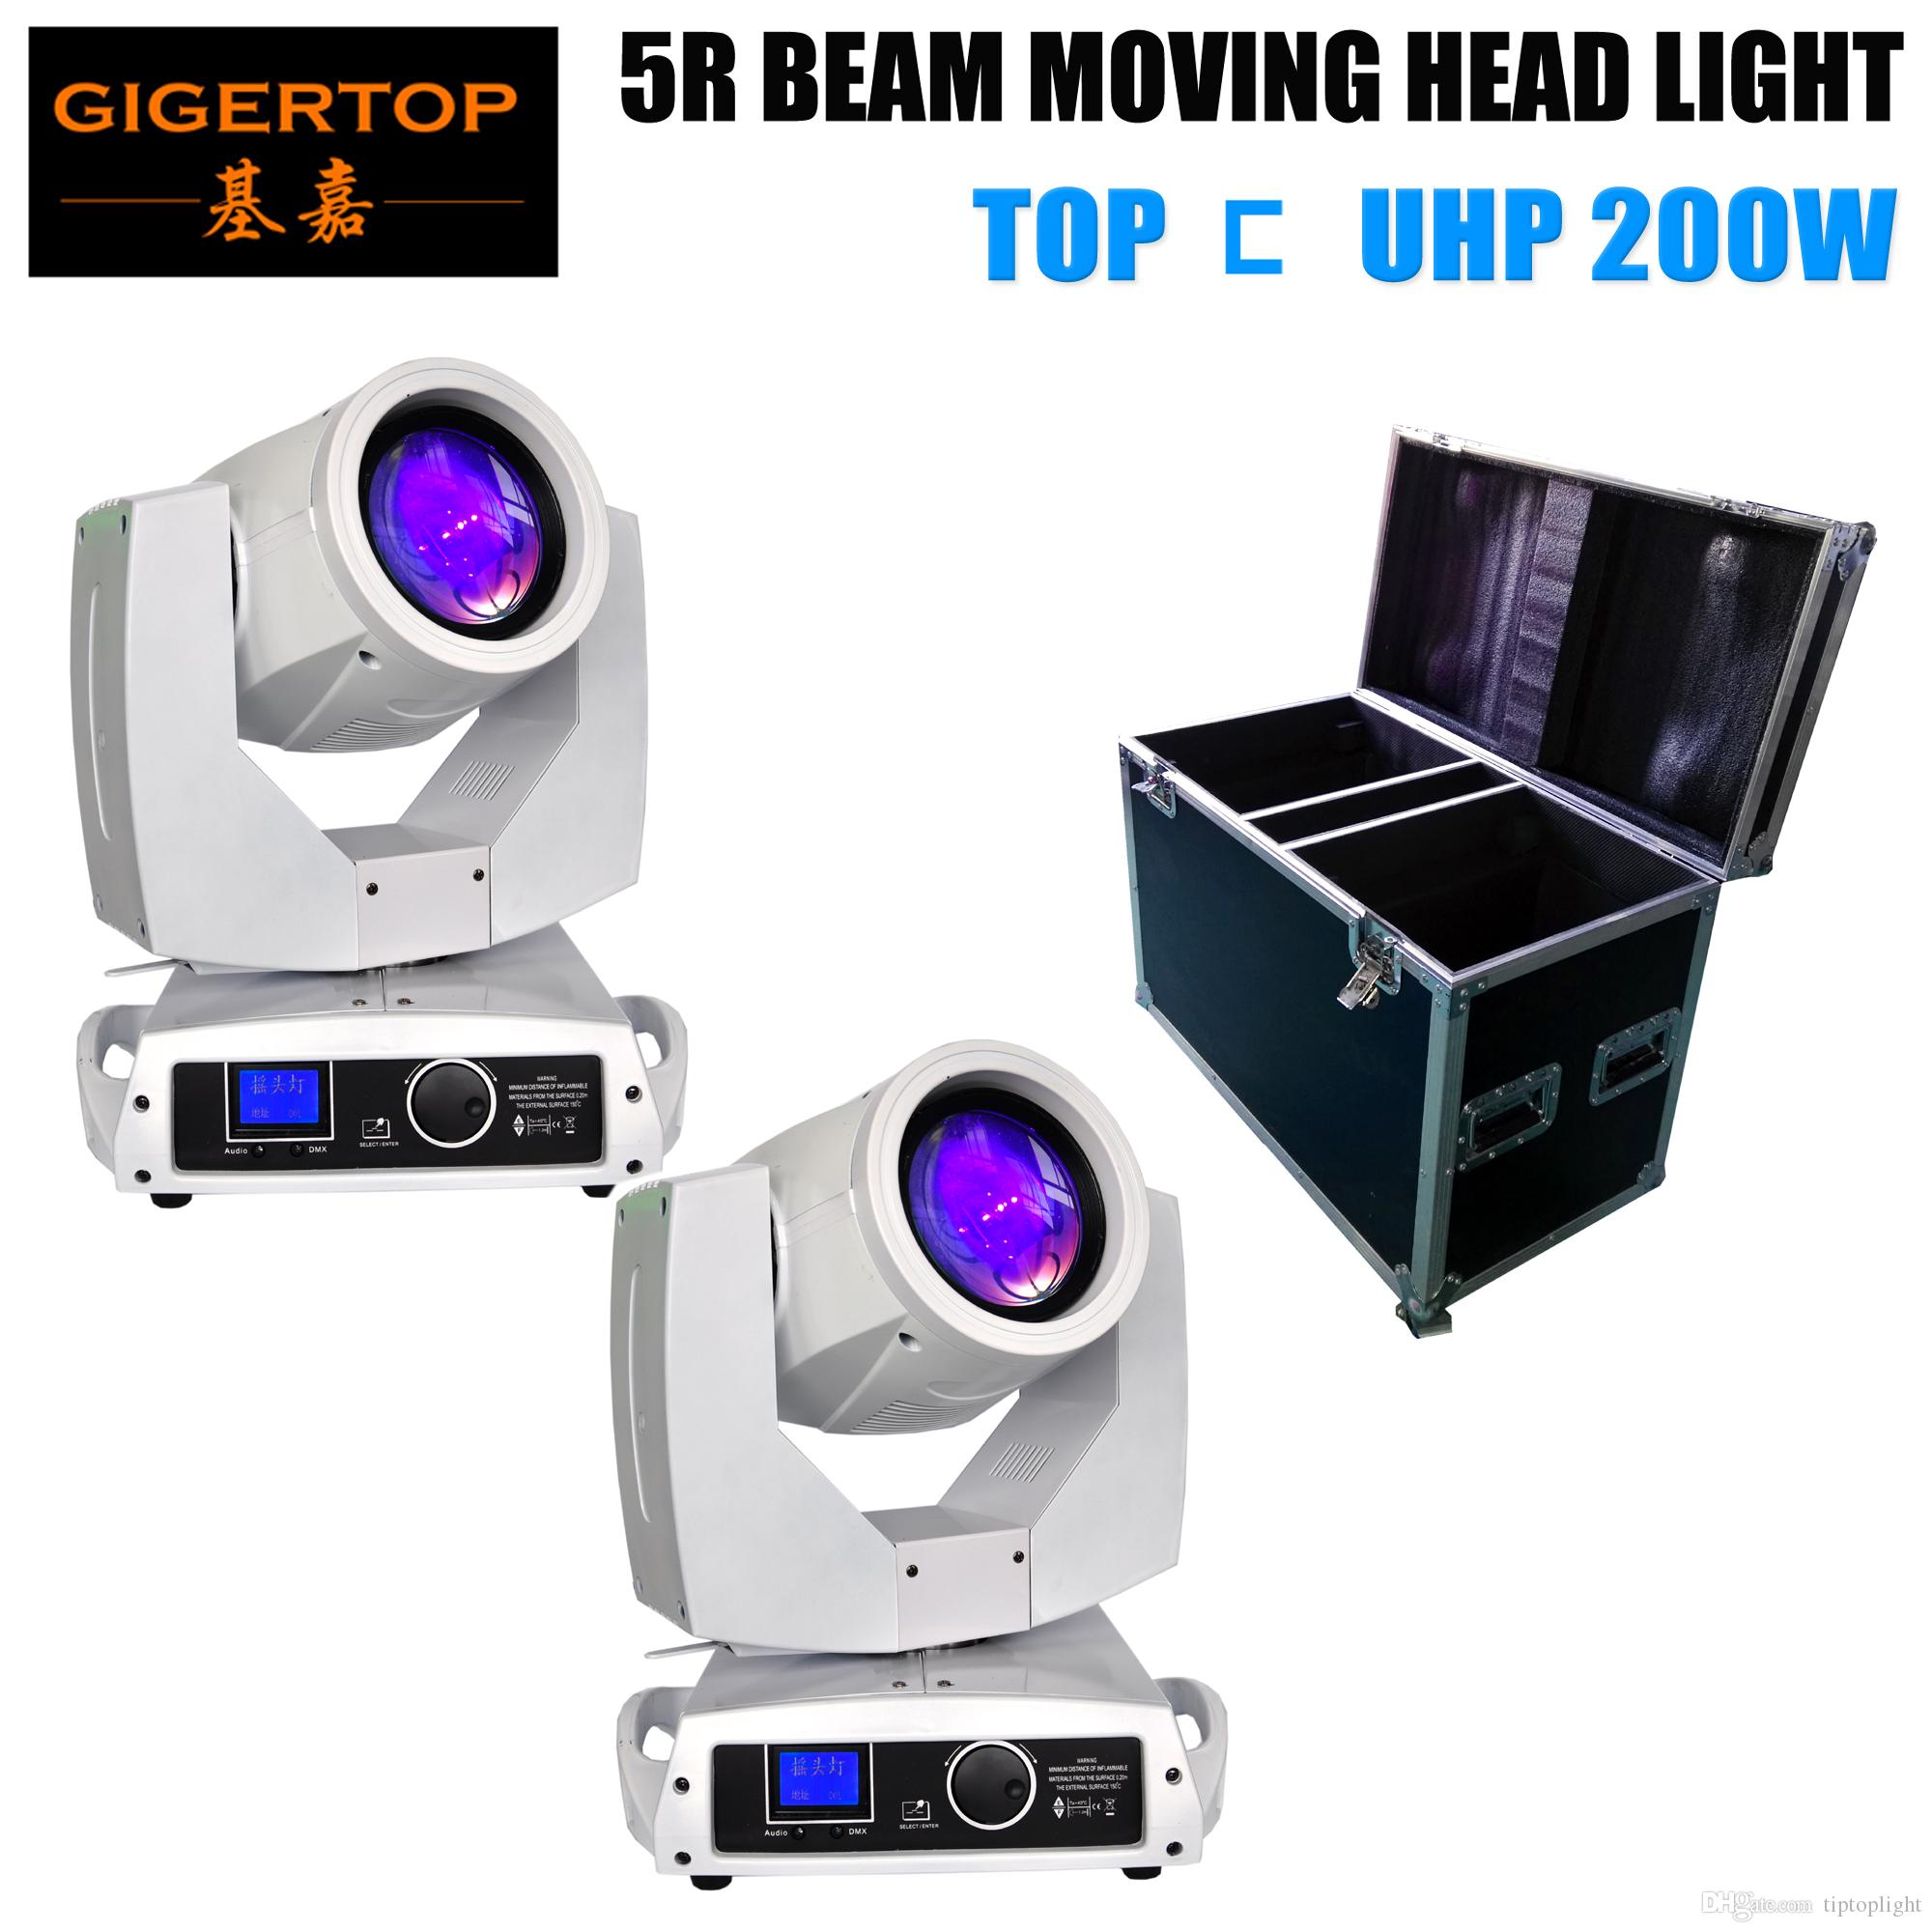 China Manufacturer 2in1 Road Case Pack White Color 200W 5R Sharpy Beam Stage Moving Head Light 16 DMX Channels with Hook/Clamps